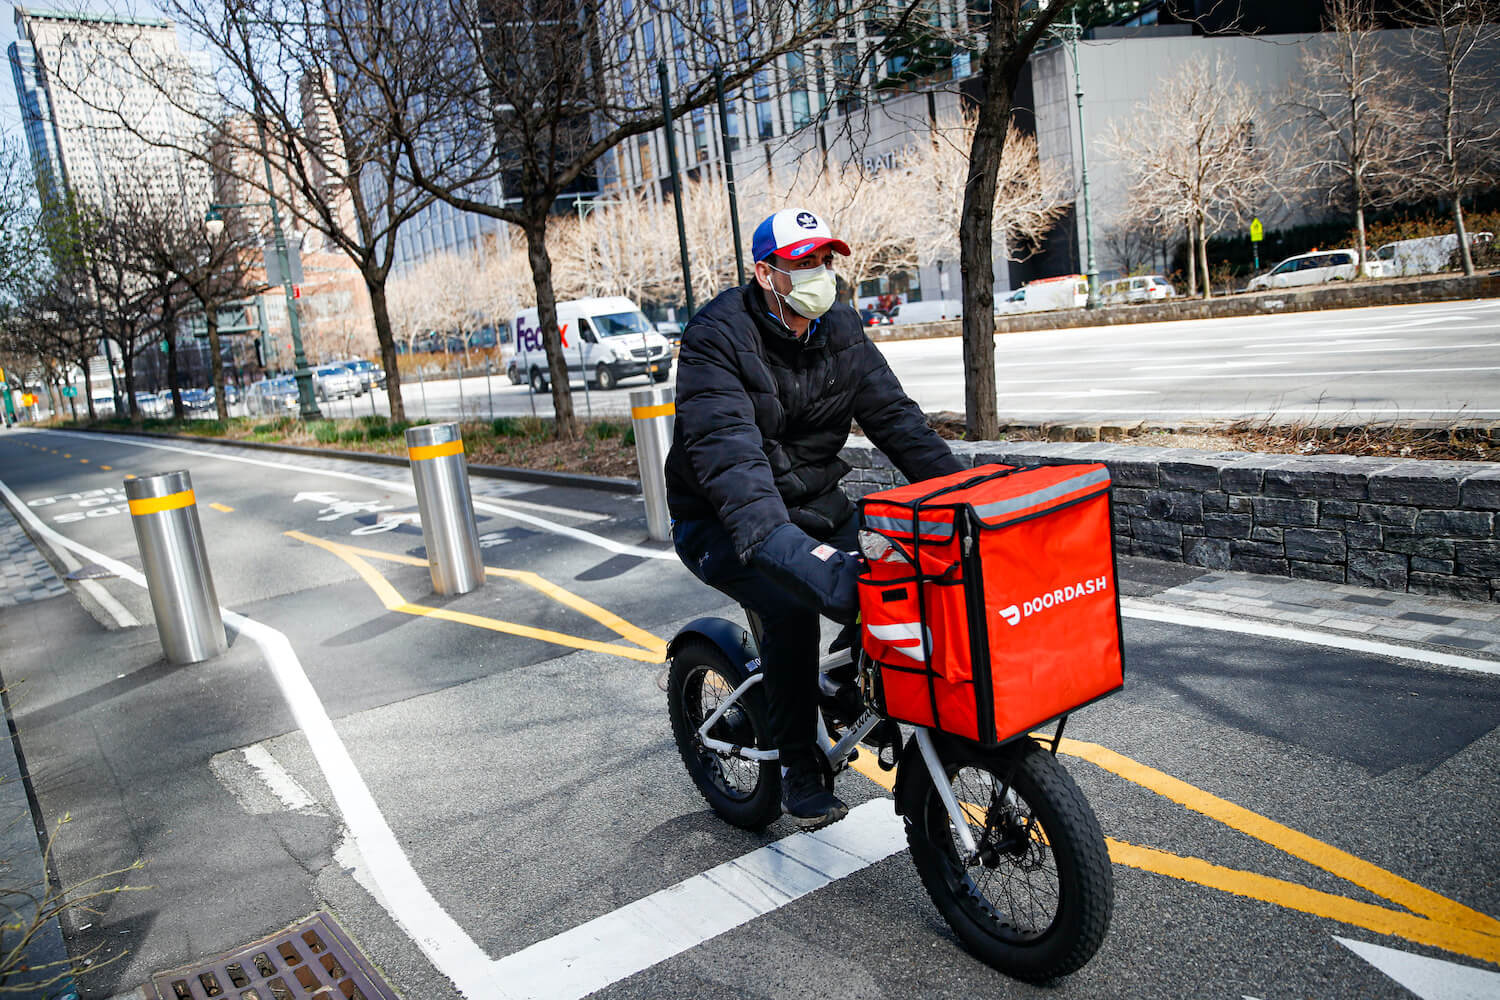 A Doordash delivery gig worker rides his bike down a street. November 2020